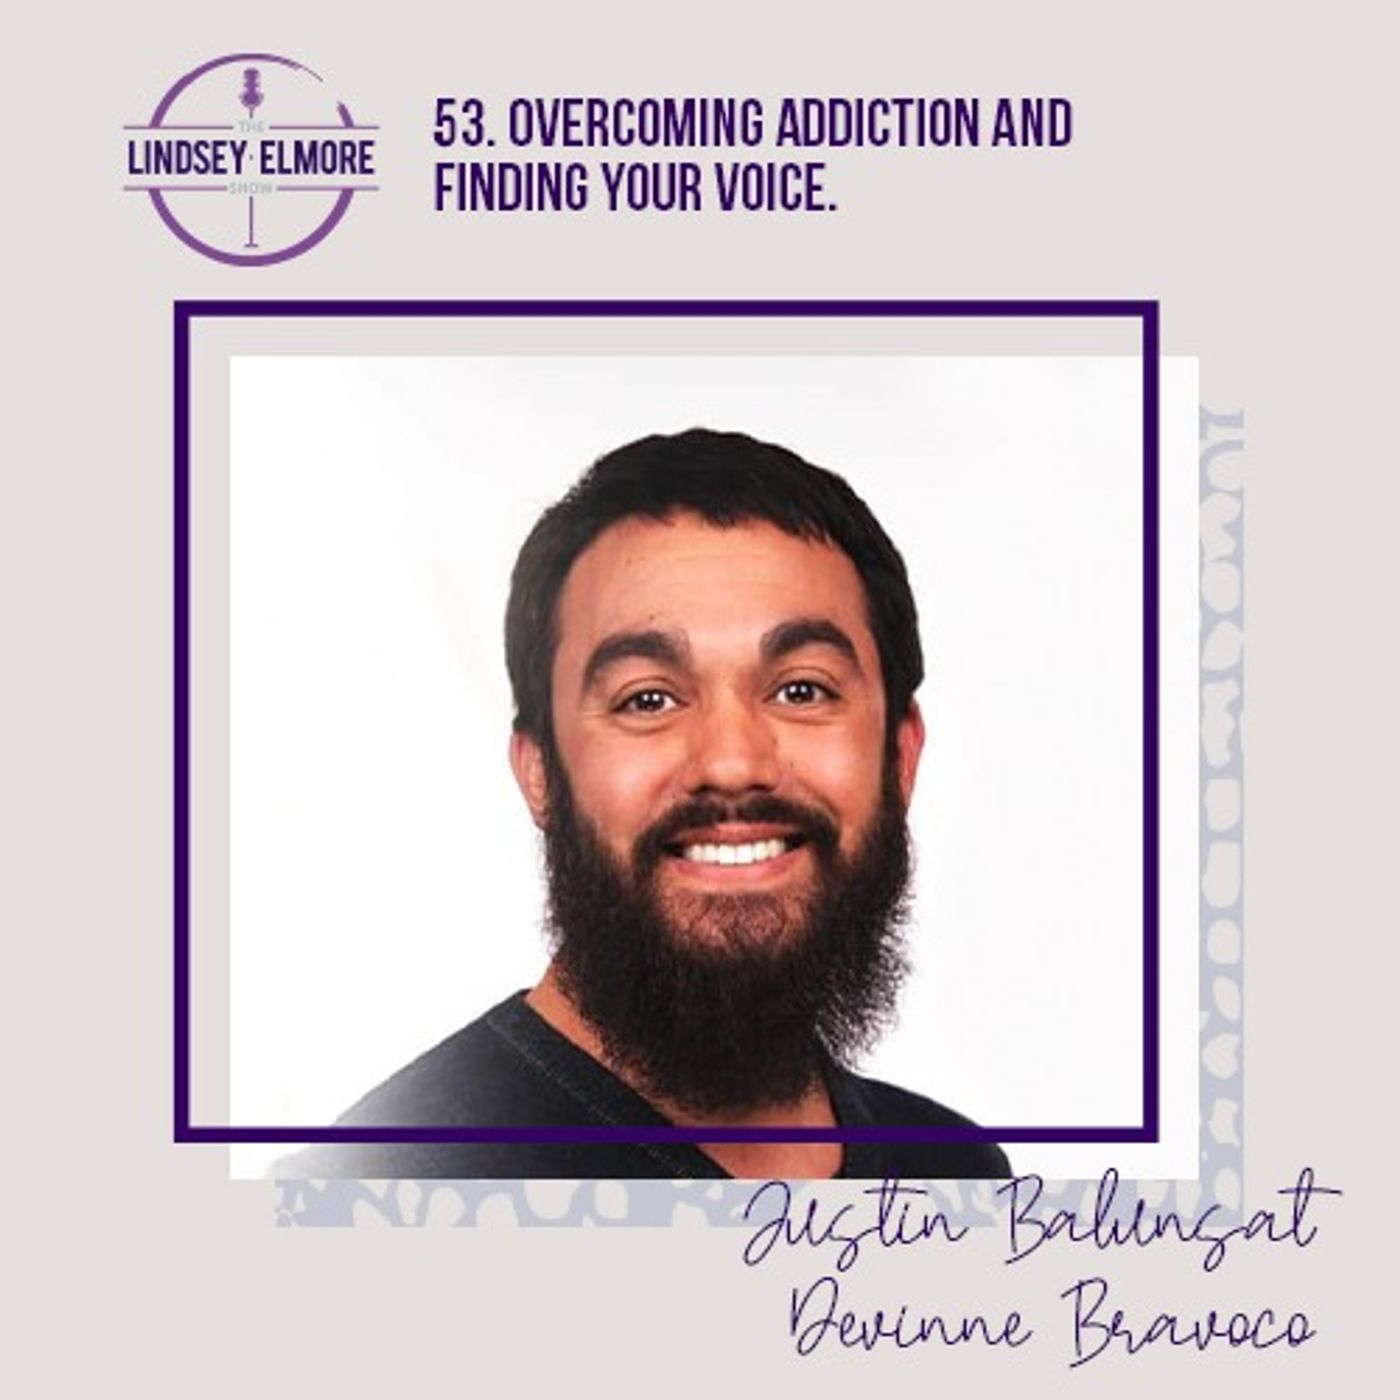 Overcoming addiction and finding your voice. An interview with Justin Balunsat featuring Devinne Bravoco.